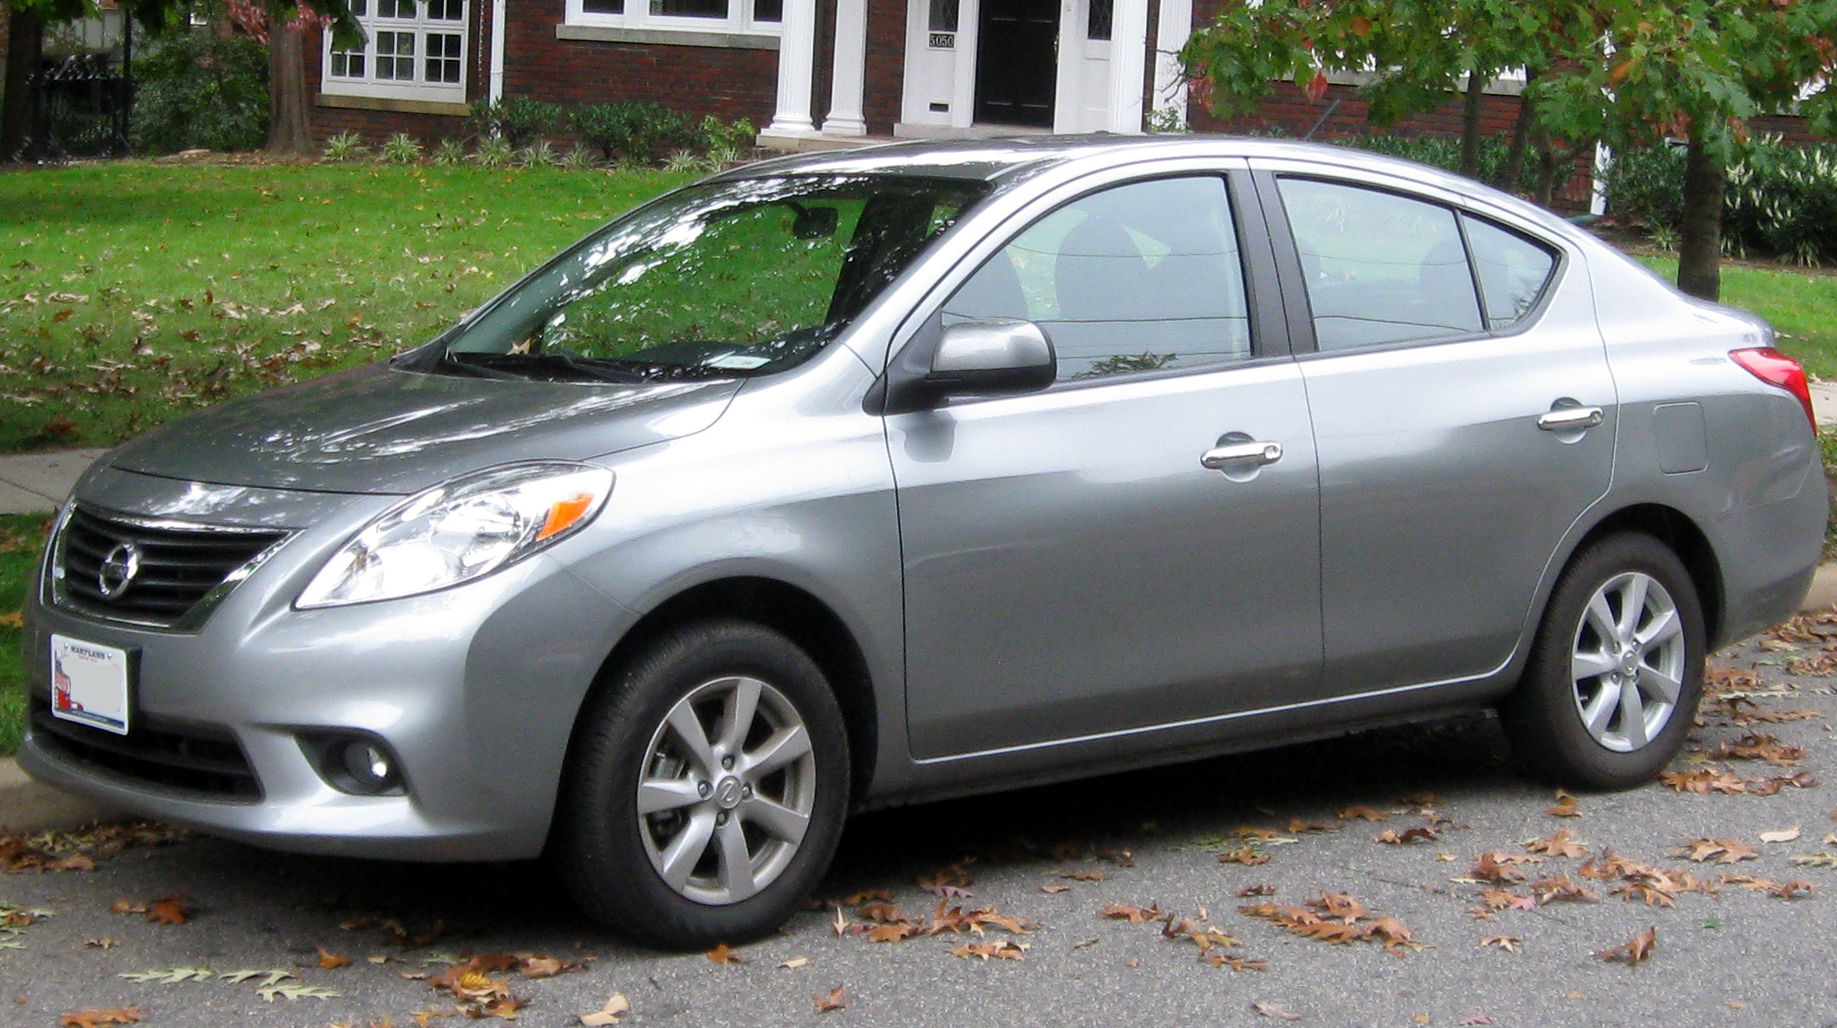 File:2012 Nissan Versa SL sedan -- 10-12-2011.jpg ...